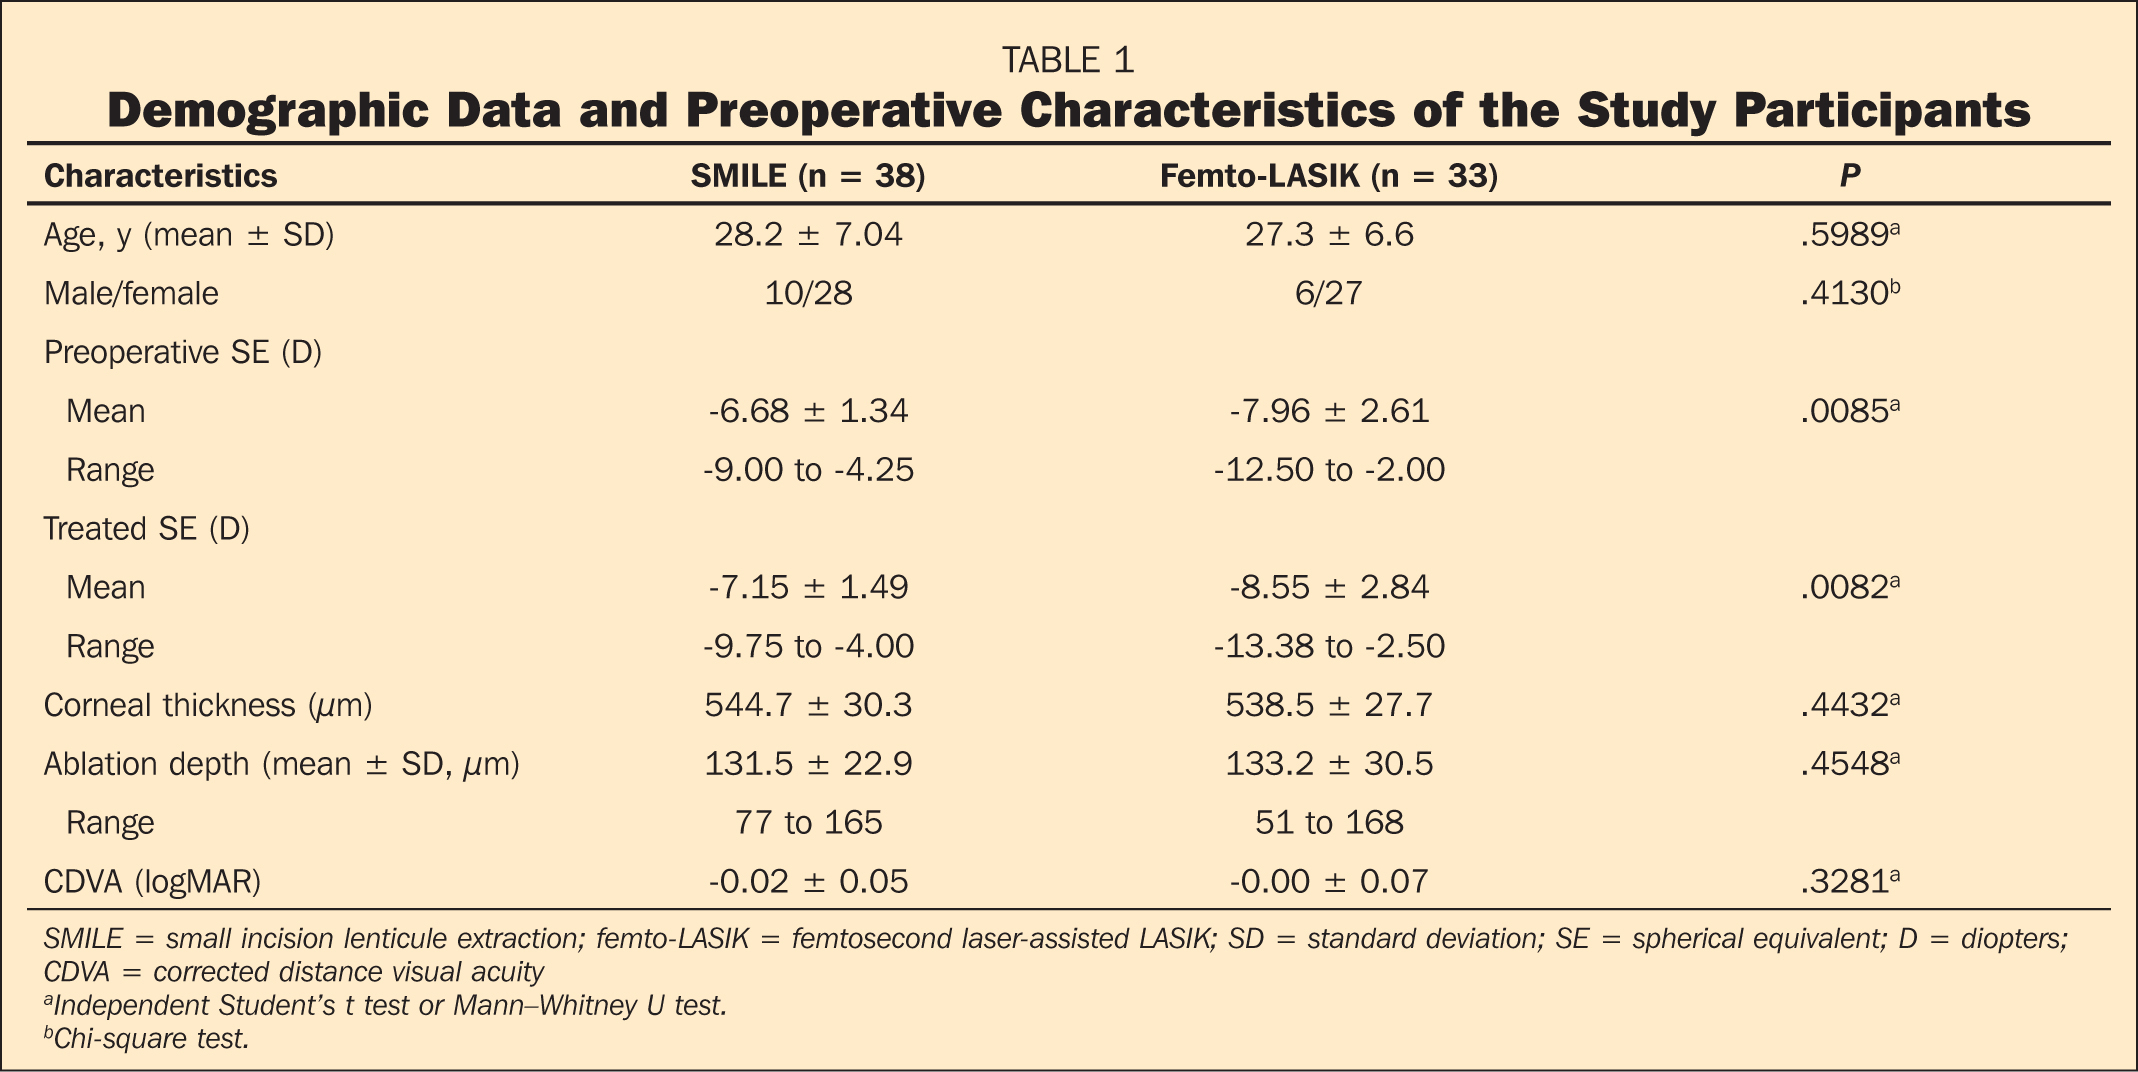 Demographic Data and Preoperative Characteristics of the Study Participants